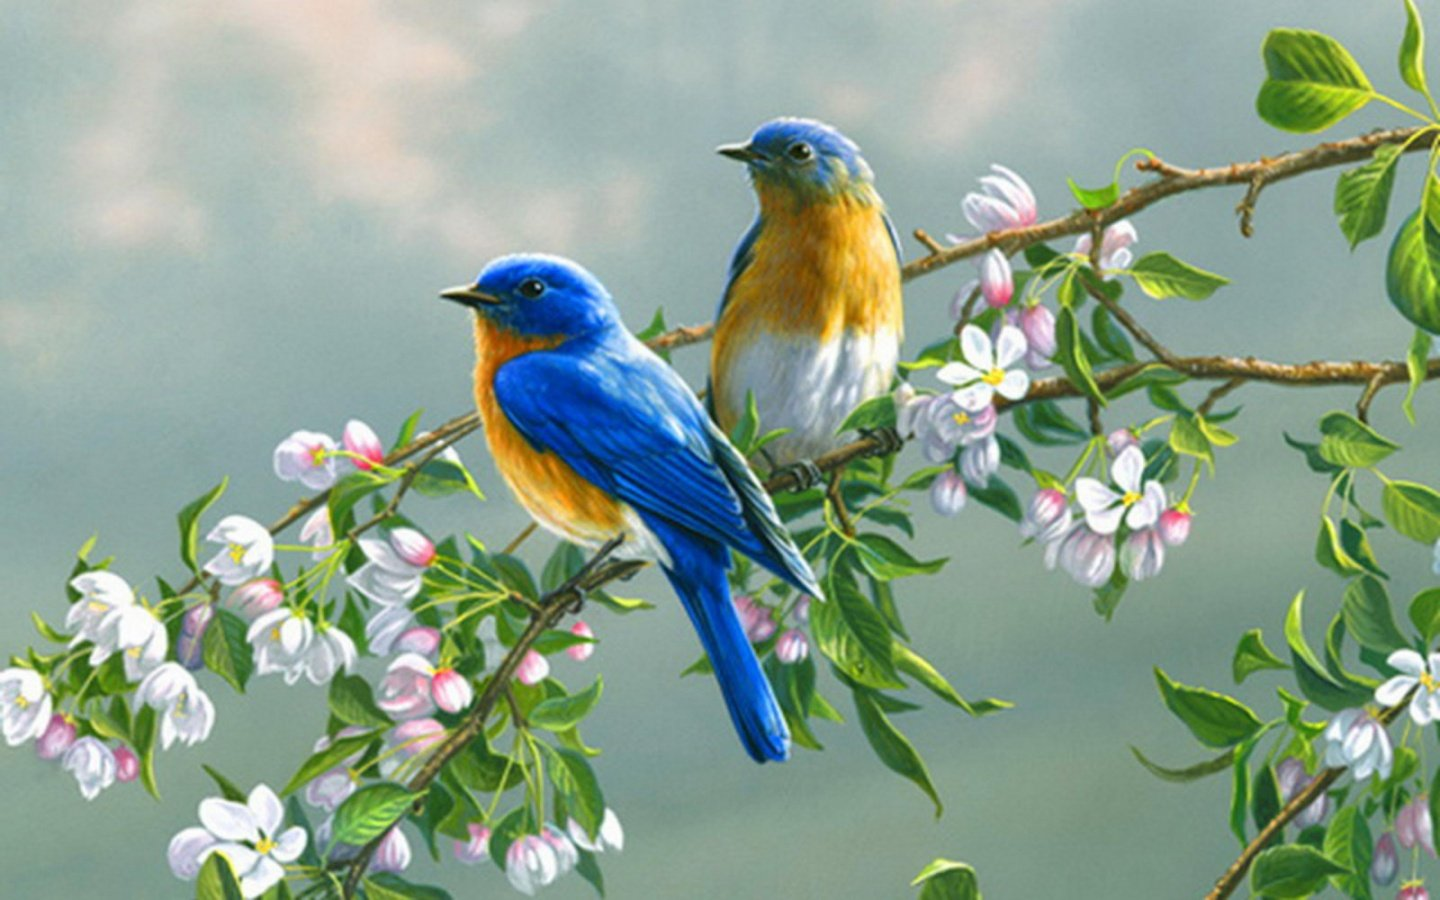 Download Cute Birds Beautiful Colorful New Latest Wallpaper 1440x900 1440x900